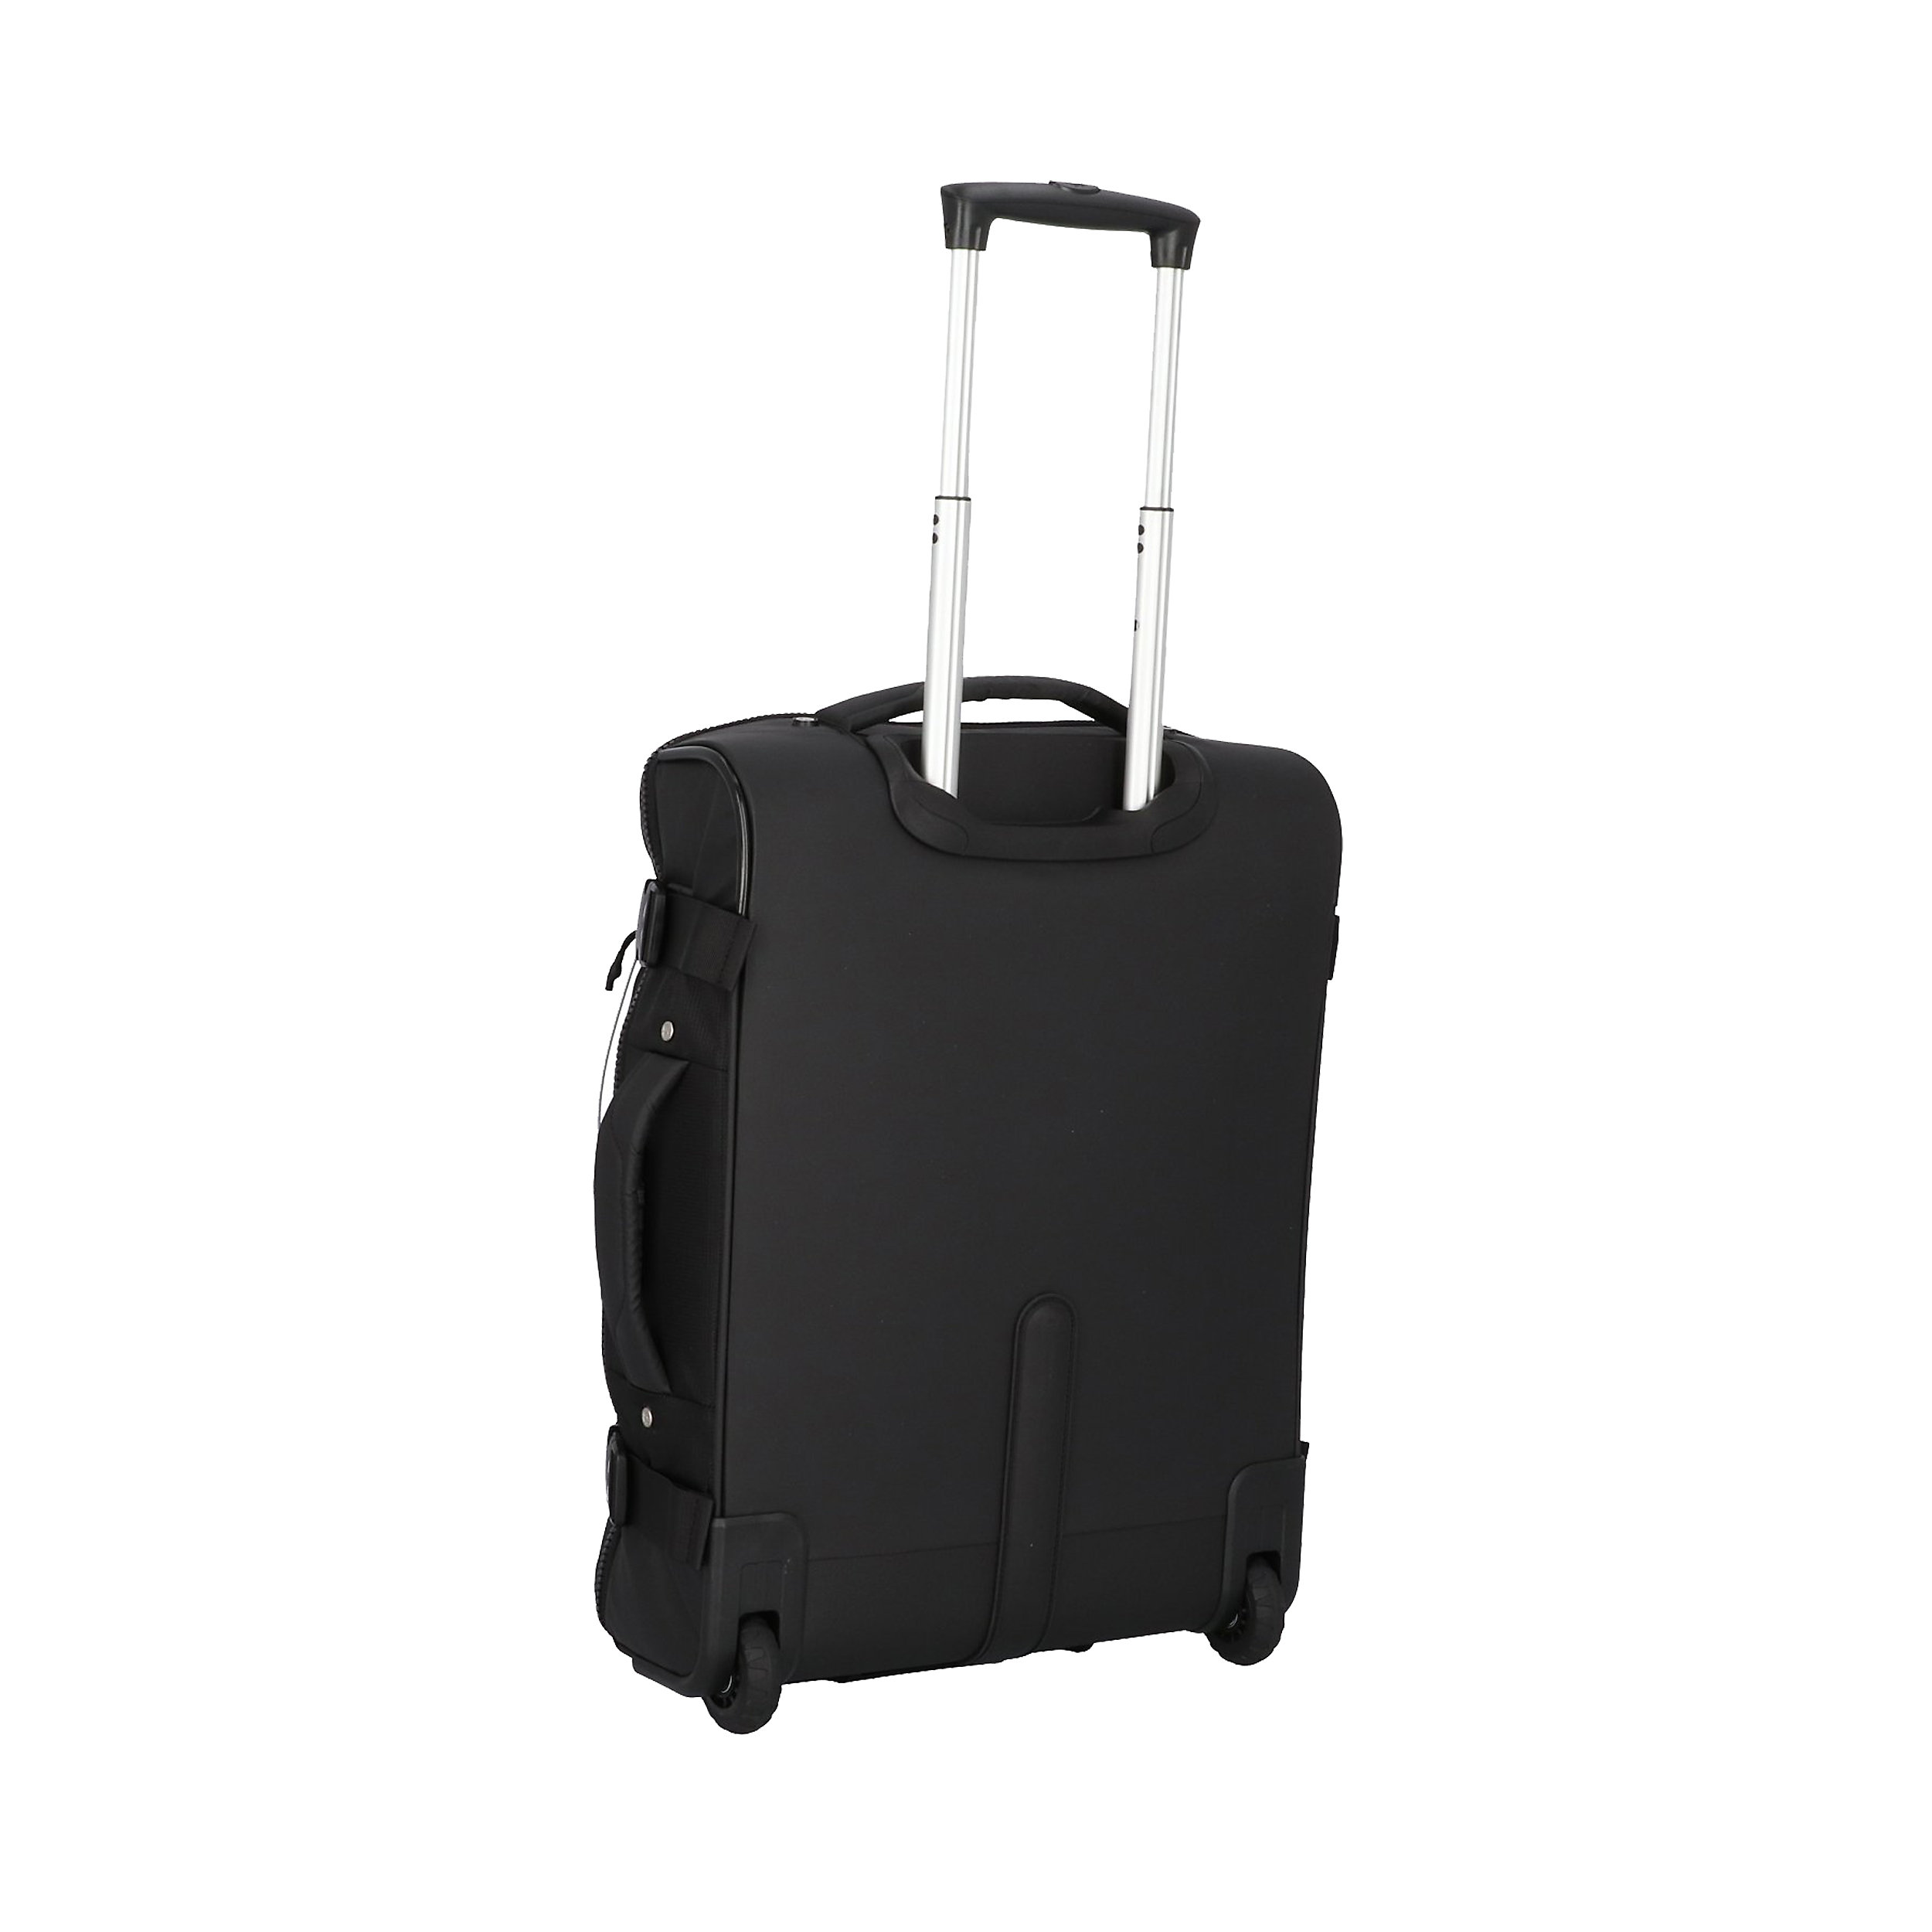 Wheeled Travel Bag with 2 wheels 55/20 Midtown S 43 Liter